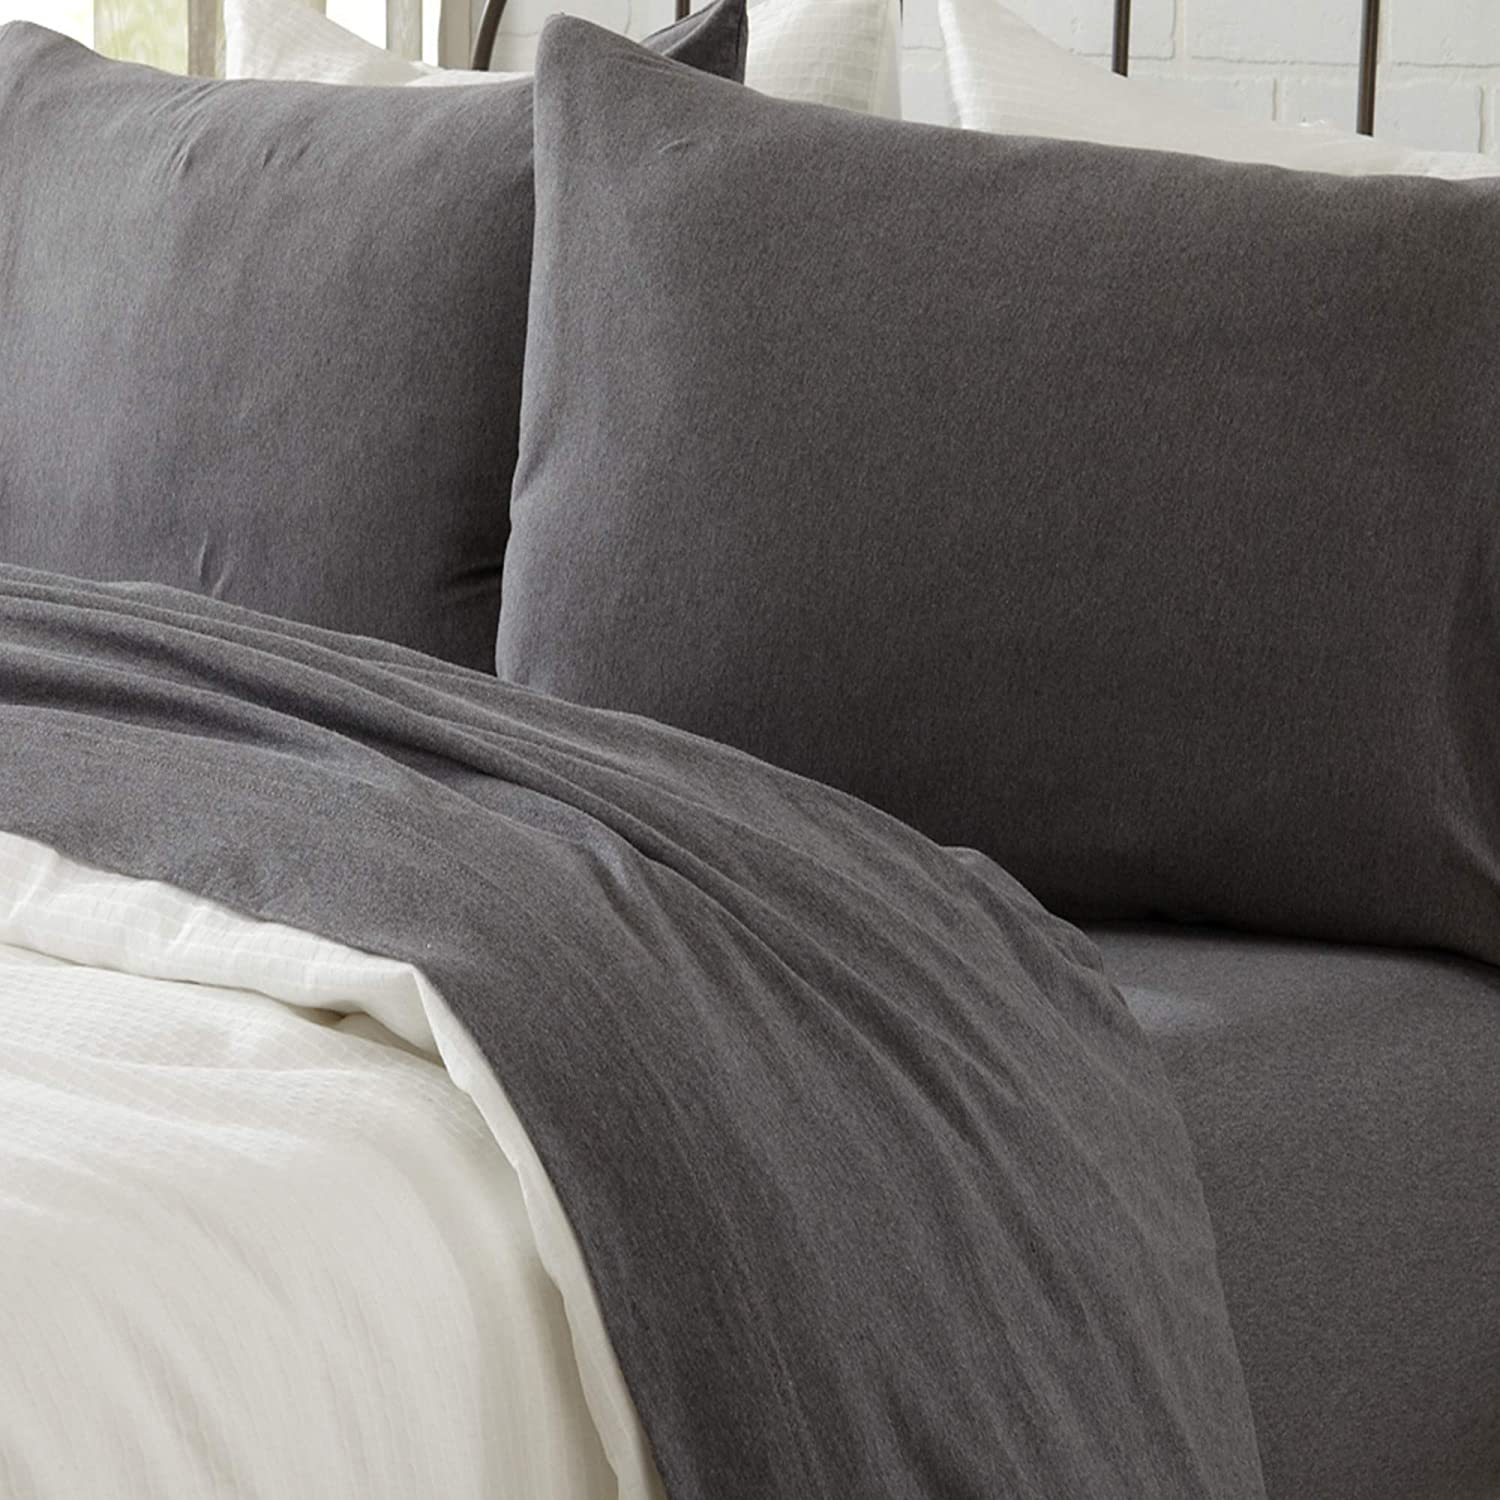 Great Bay Home Jersey Knit Sheets. All Season, Soft, Cozy Twin Jersey Sheets. T-Shirt Sheets. Jersey Cotton Sheets. Heather Cotton Jersey Bed Sheet Set. (Twin, Charcoal)